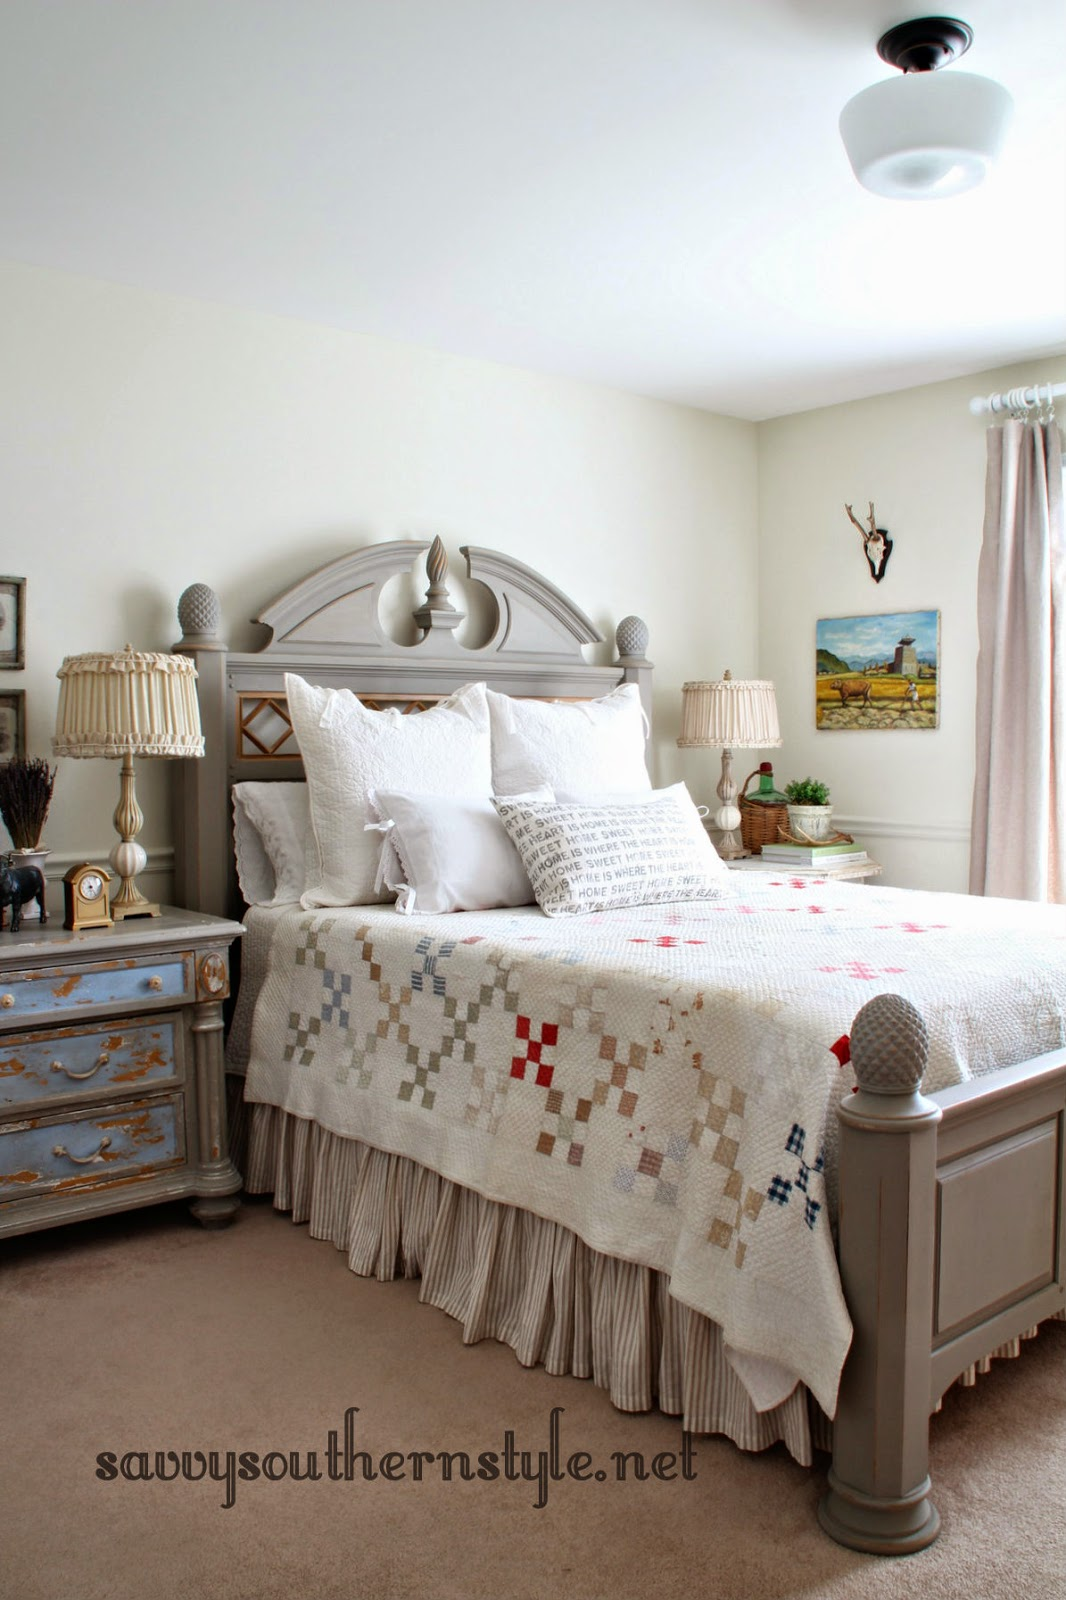 Savvy southern style old bed new look for French farmhouse bed